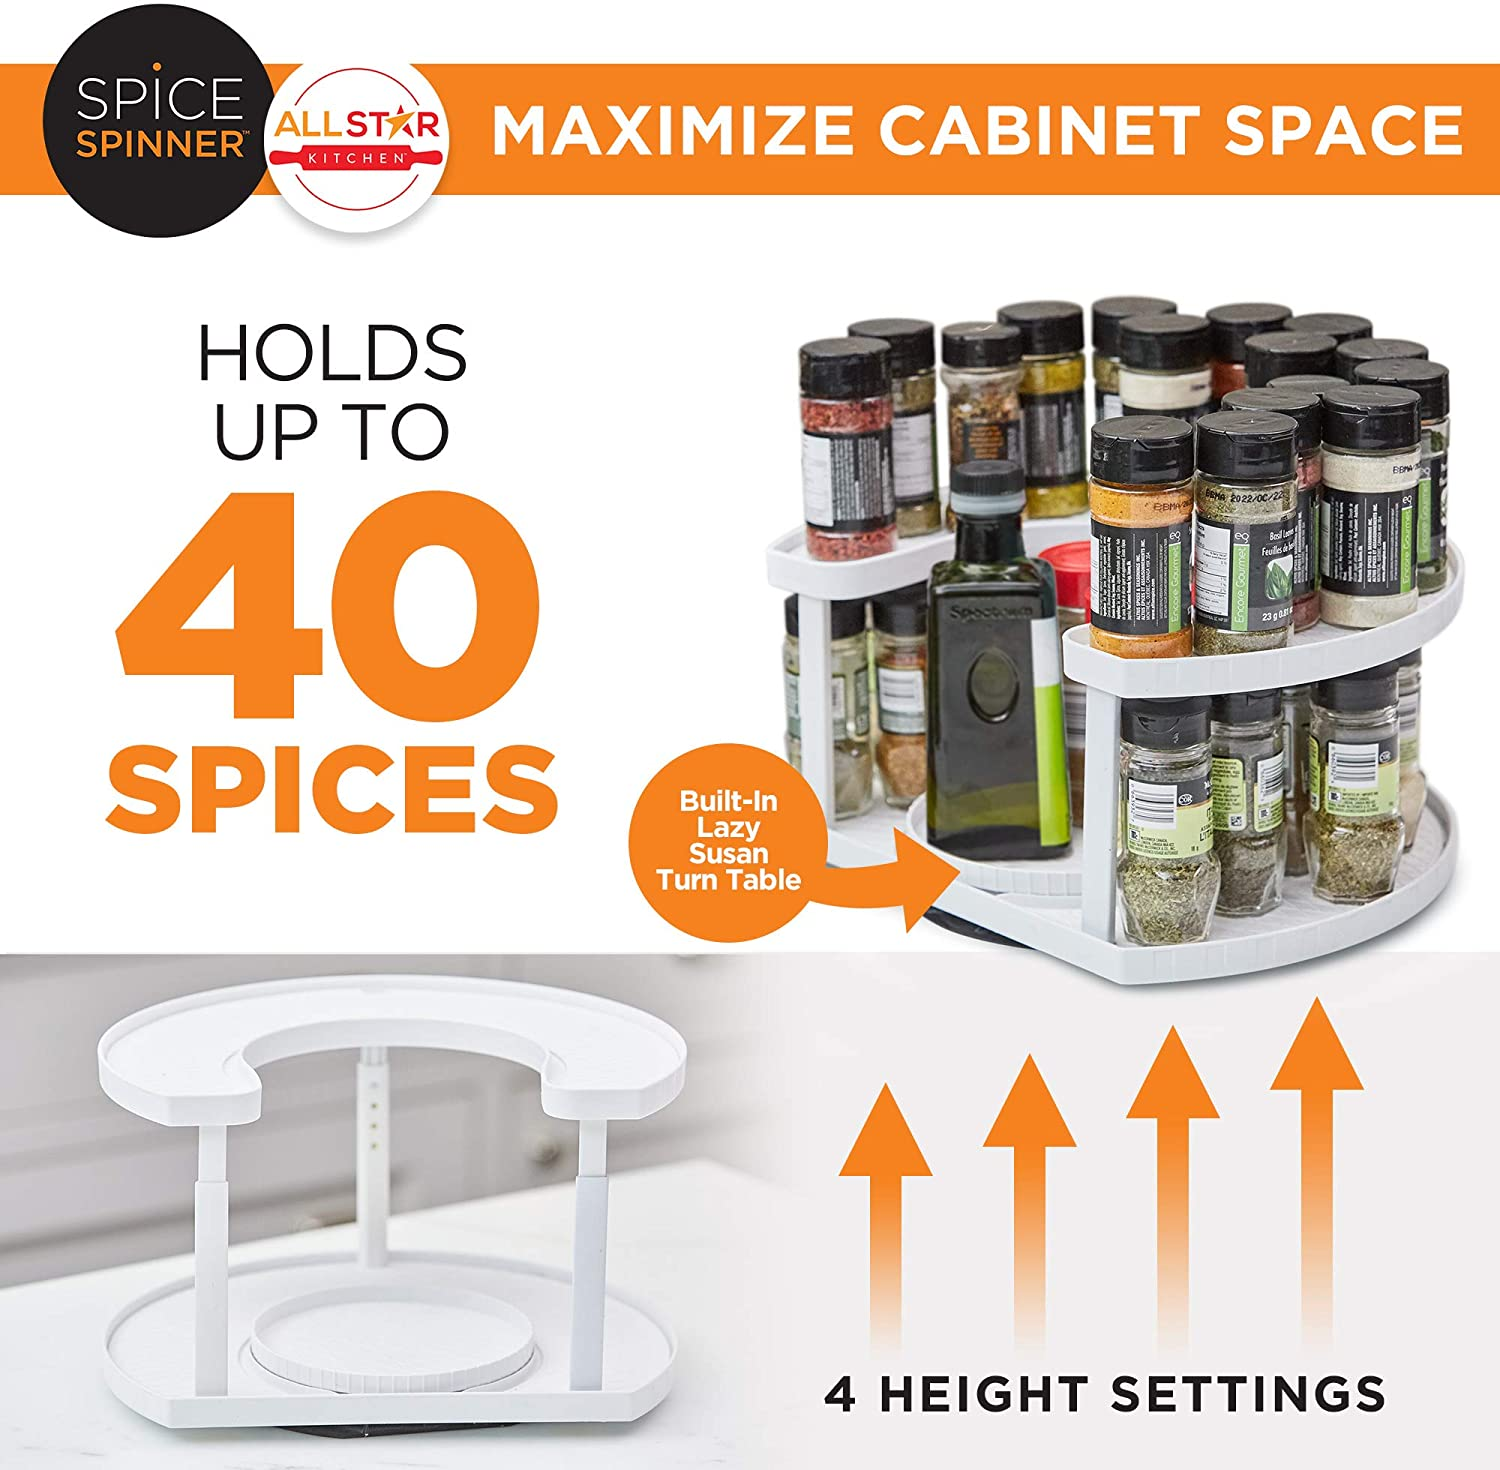 Spice Spinner Two-Tiered Spice Organizer